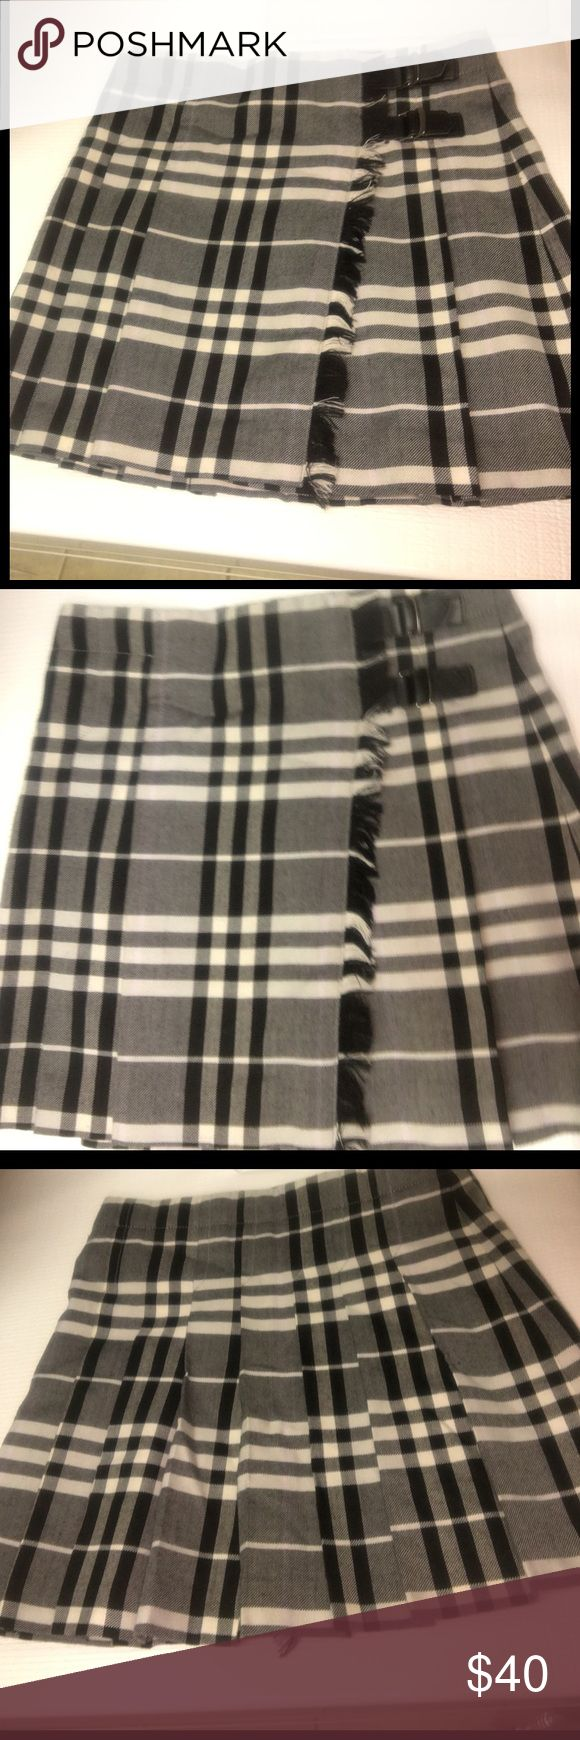 Girls size 8 Burberry skirt Girls size 8 Burberry skirt gently worn Burberry Bottoms Skirts